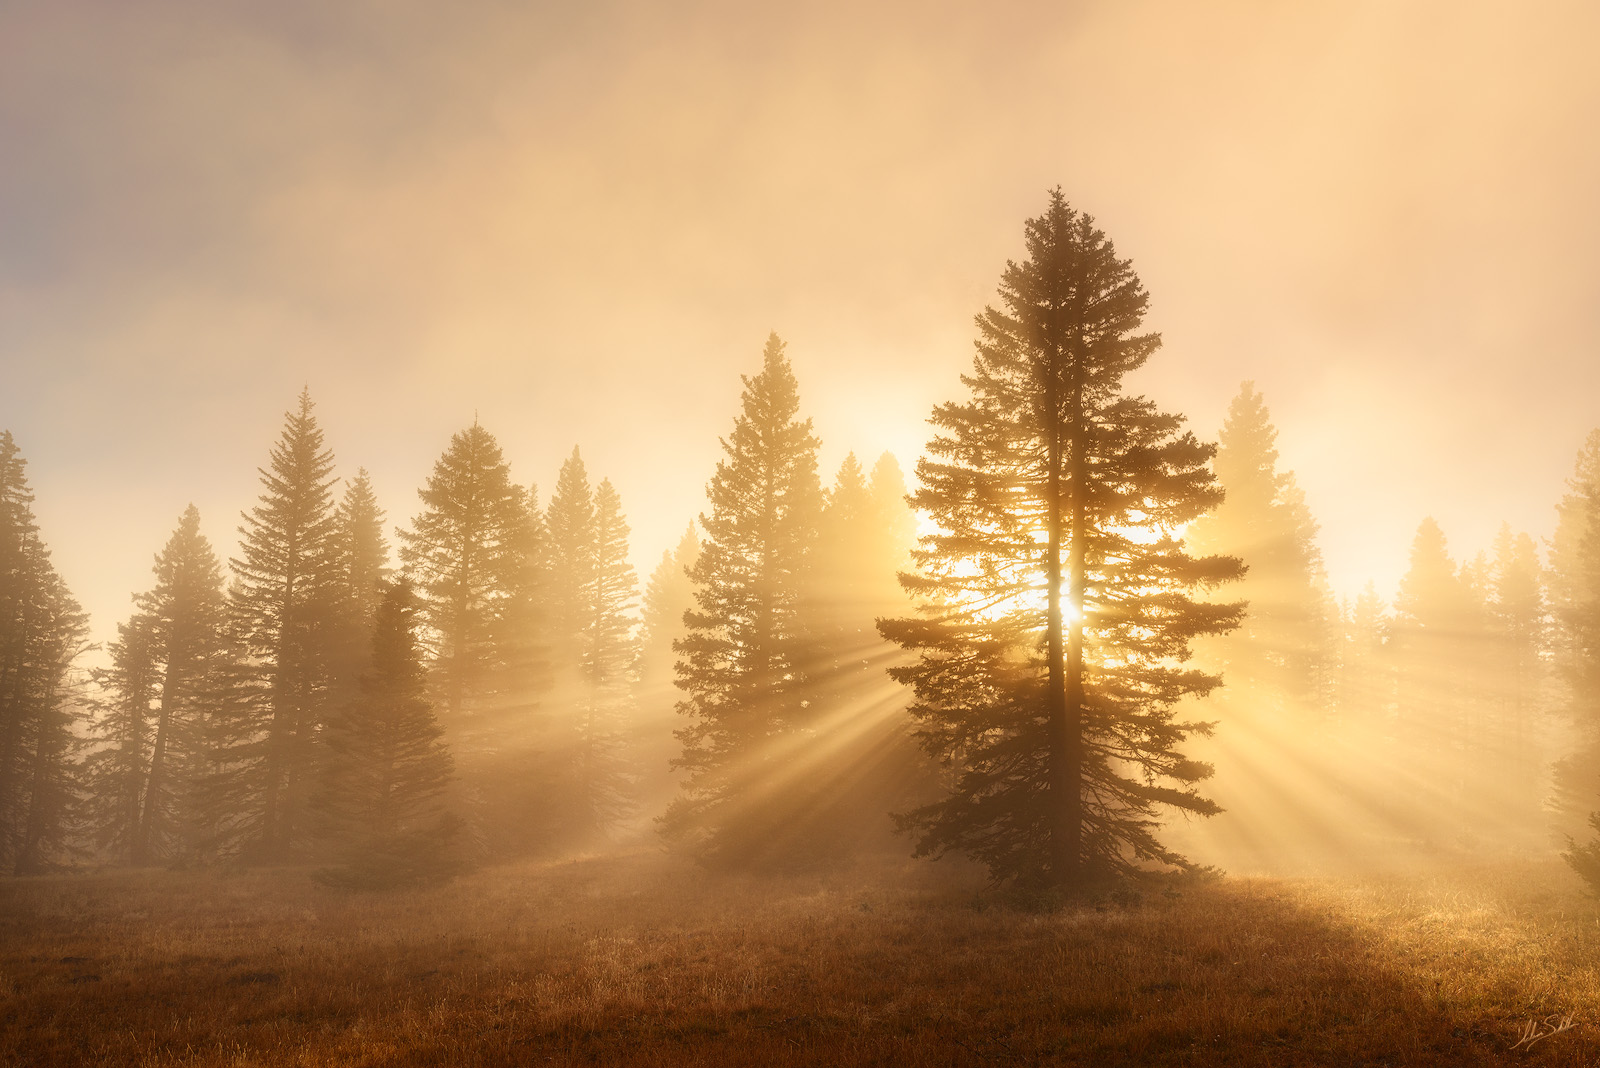 Brazos, Chama, Fog, Forest, NM, New Mexico, Sunlight, Sunrise, Carson, National Forest, photo